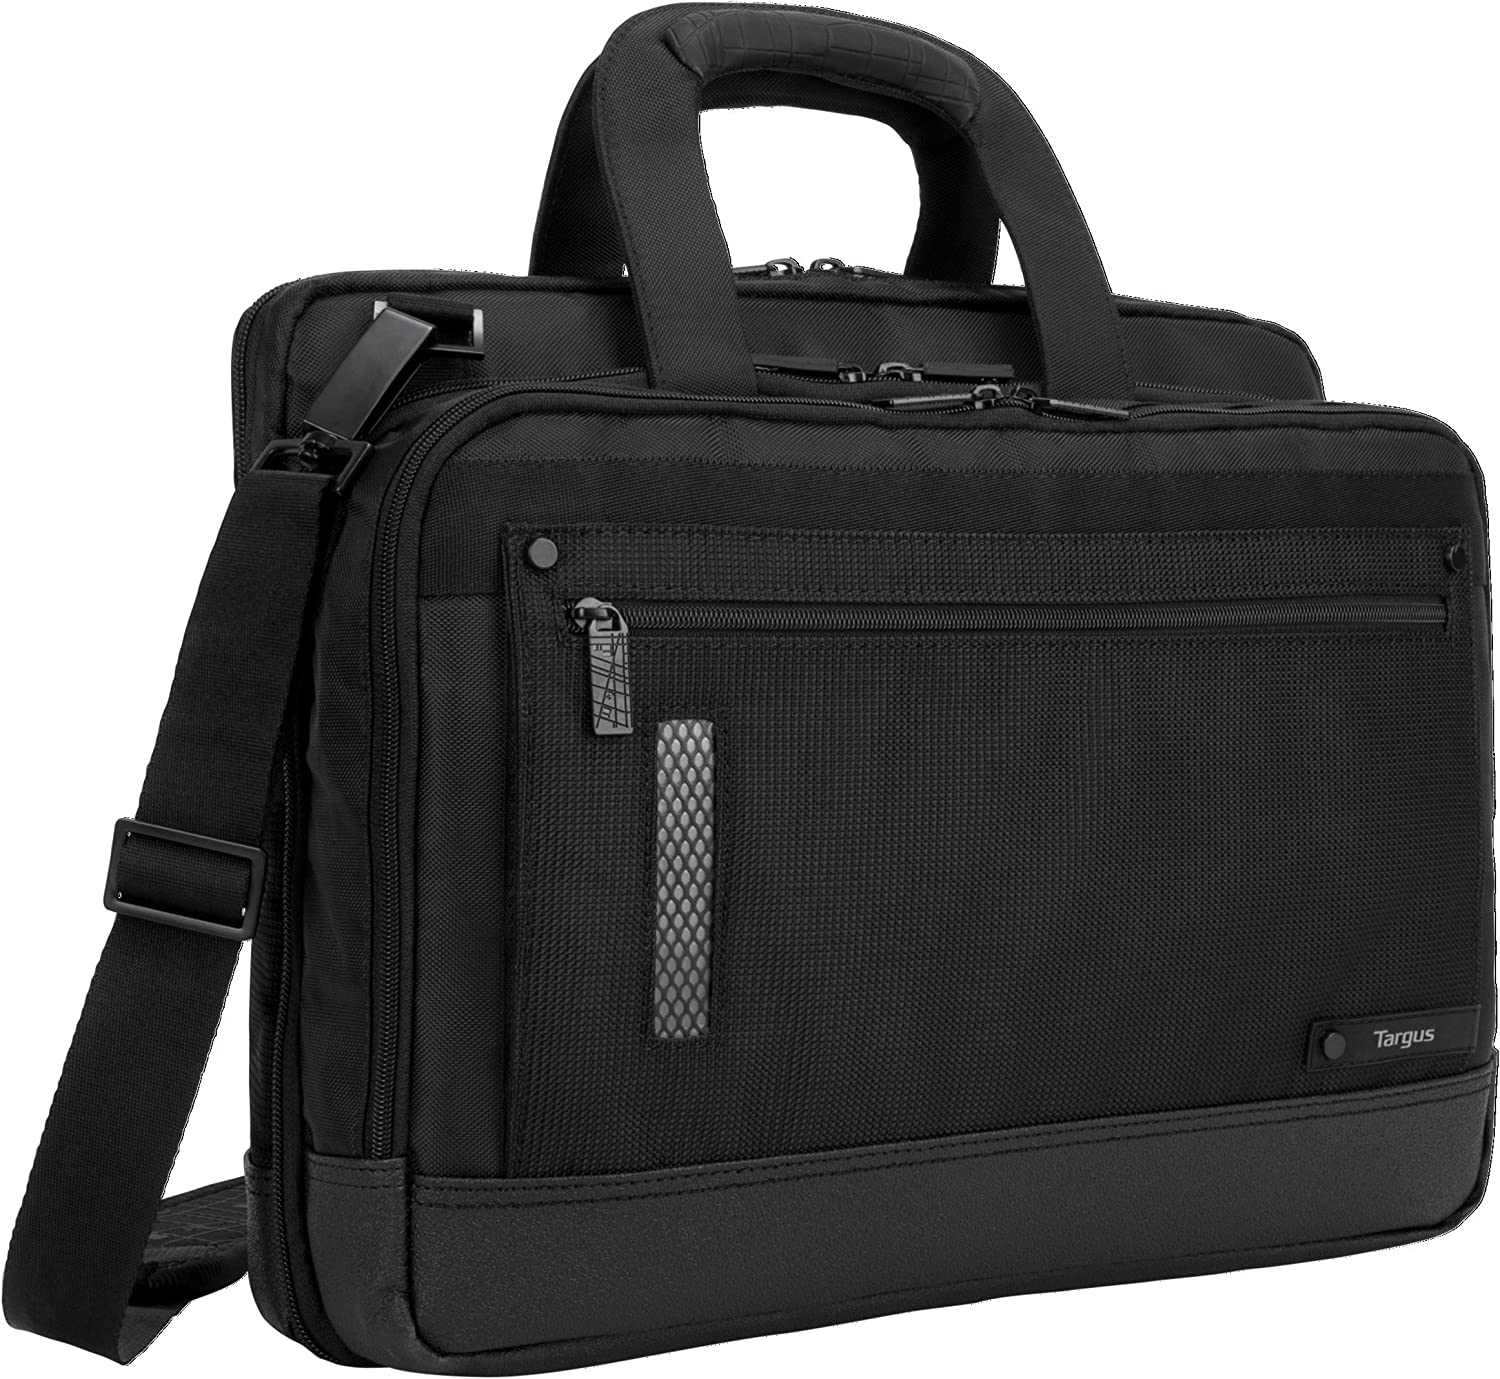 "Targus Revolution Travel Topload 15"" Laptop Briefcase for Business Professional with Checkpoint-Friendly TSA Screening, Zip-down Workstation Accessory Pockets, Trolley Strap, Black (TTL416US)"